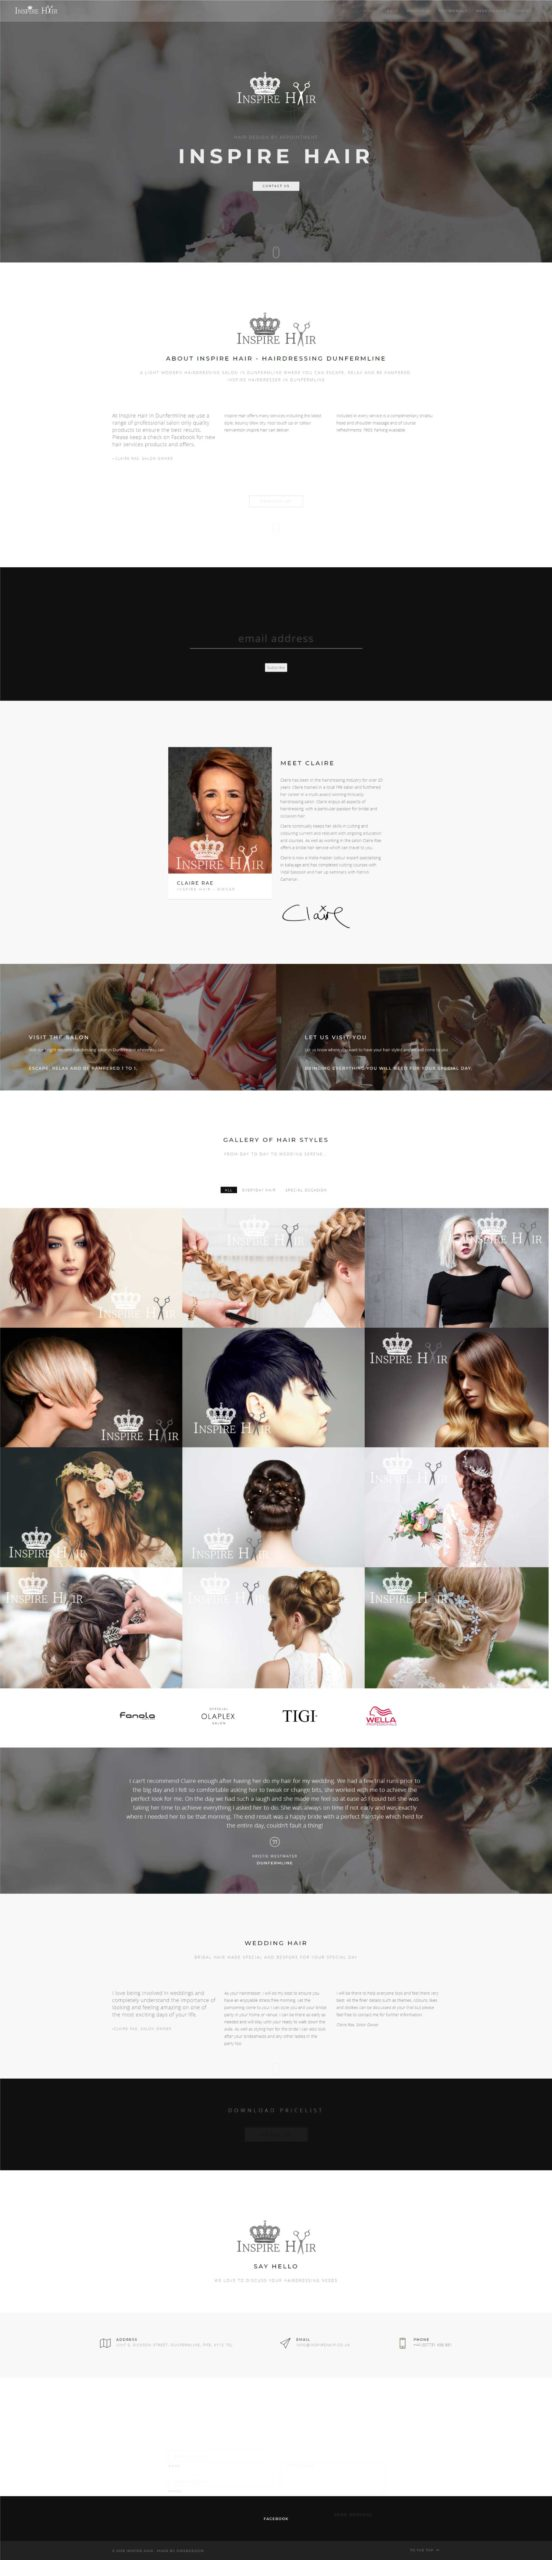 Inspire Hairdresser Website Design by Dweb Design